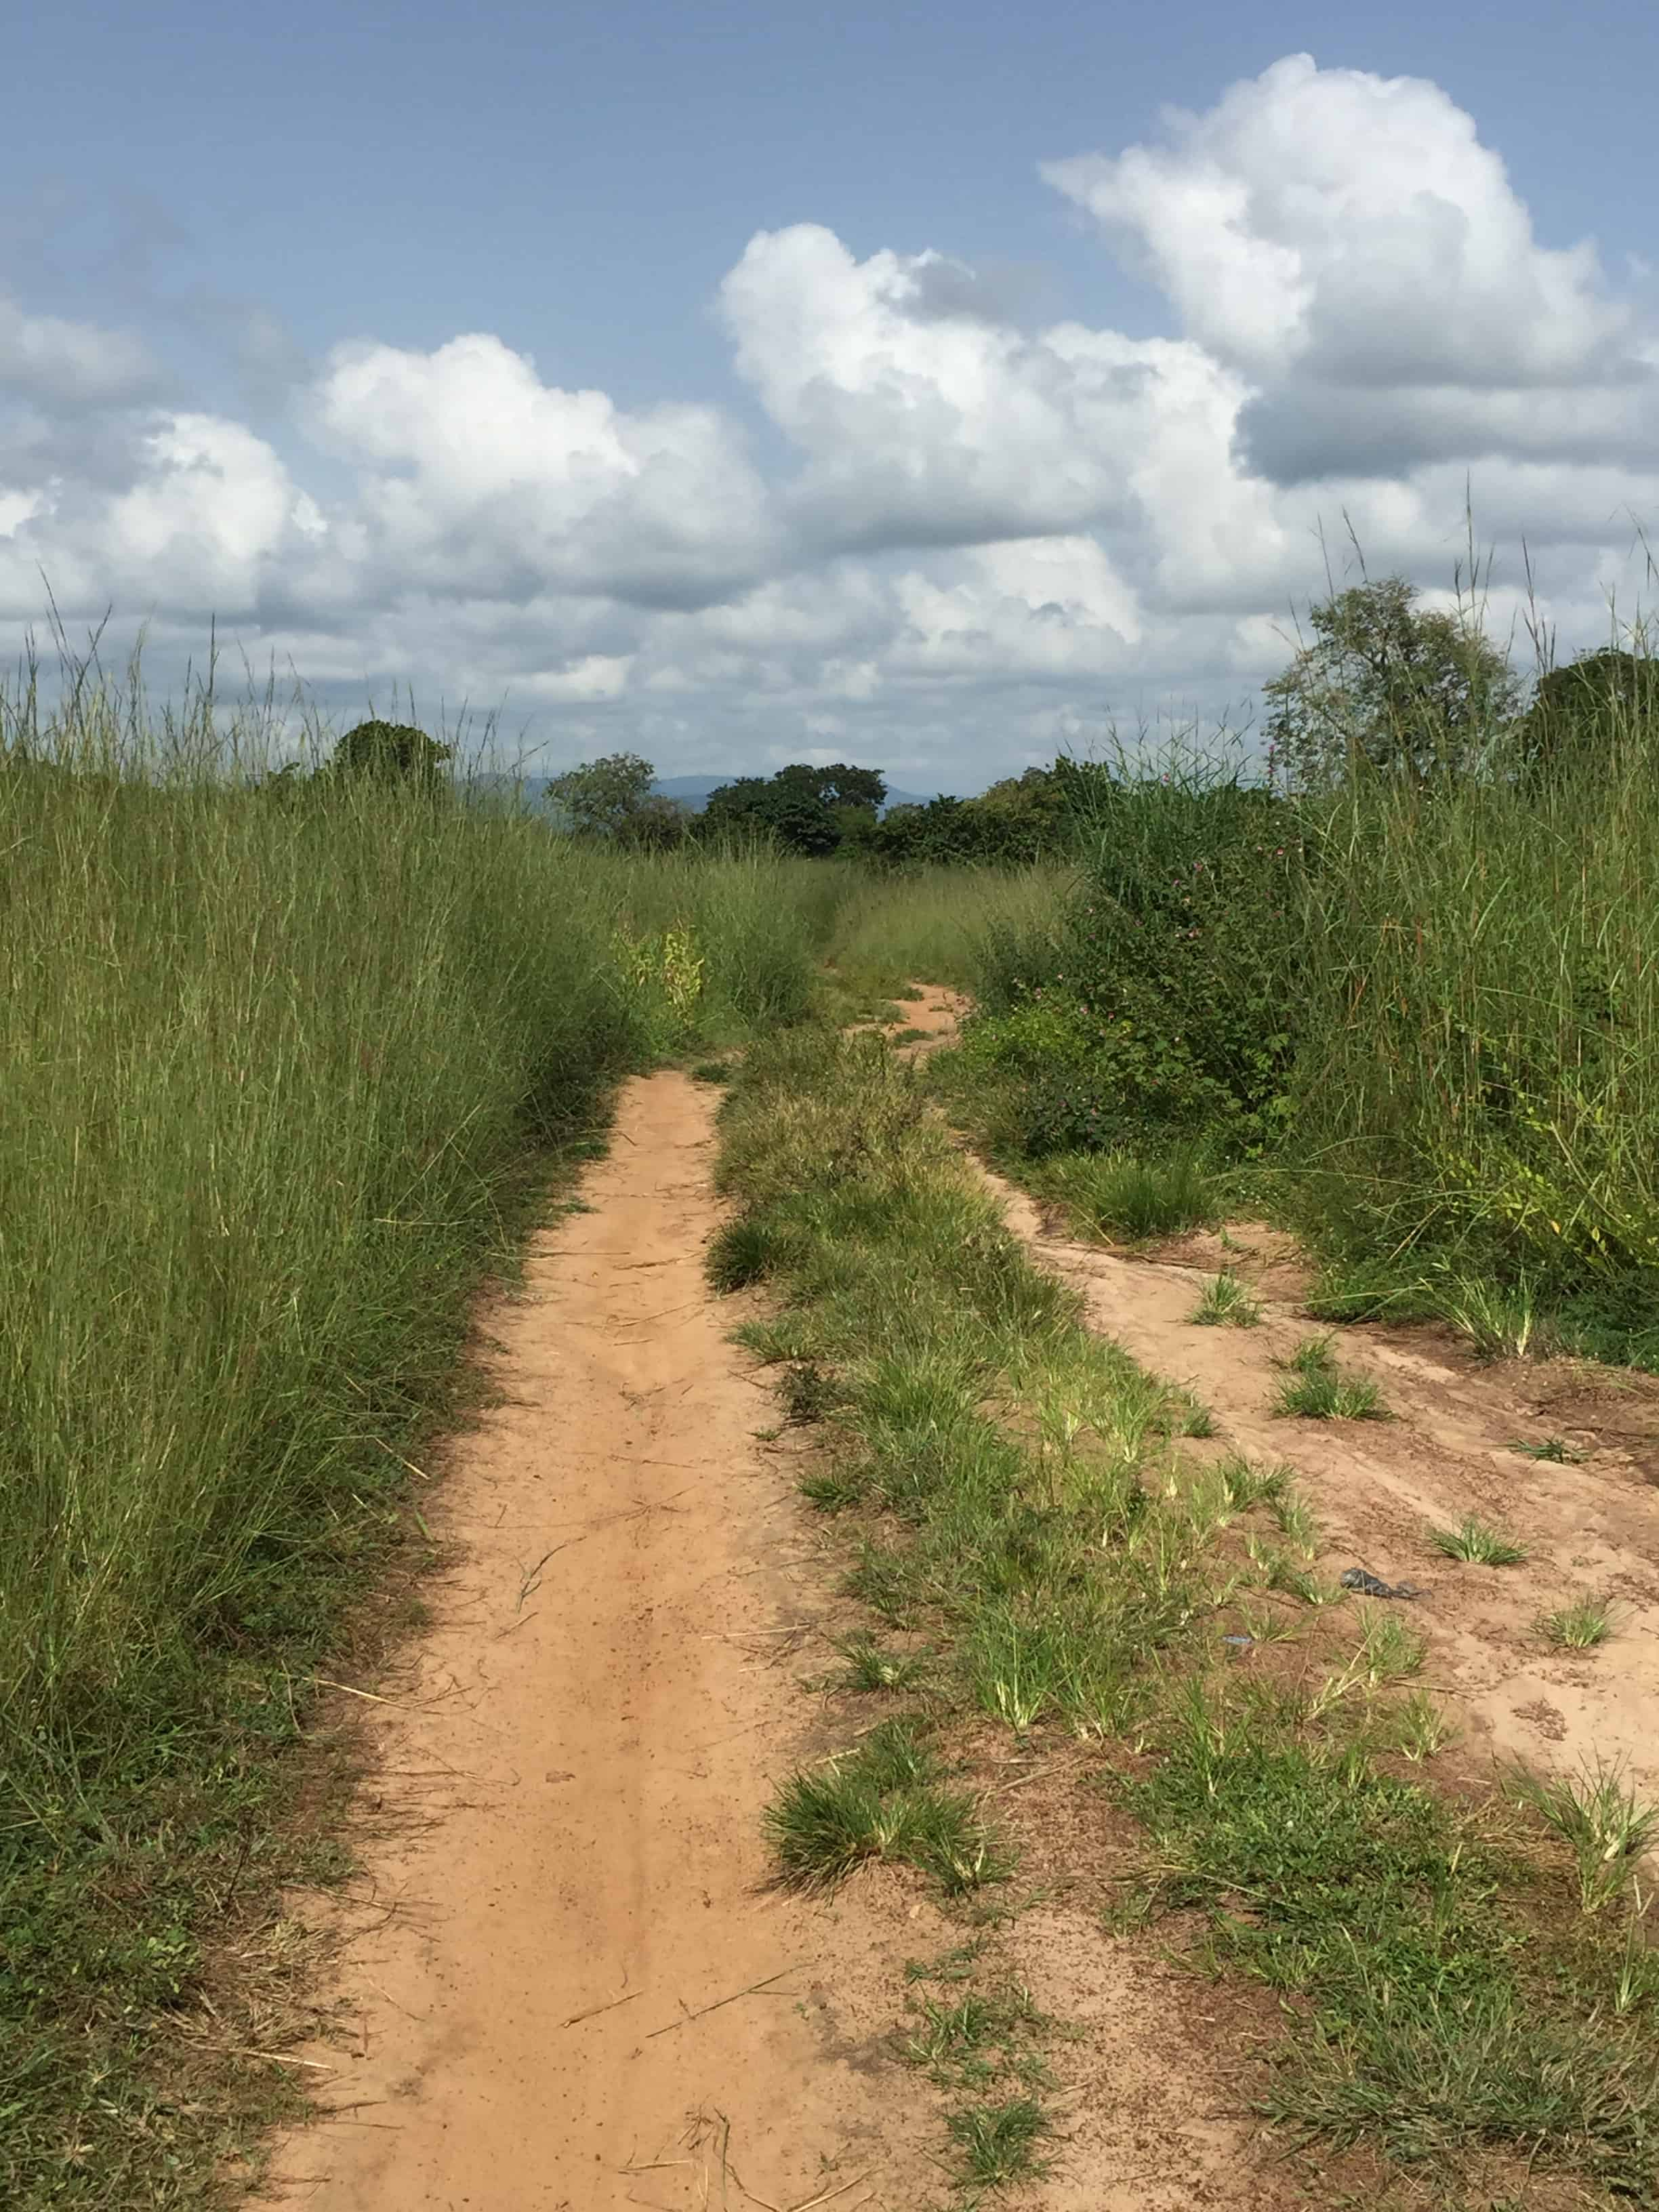 Experiencing God Among the Unreached - StoryRunners November 2017 Newsletter - Road to Nowhere